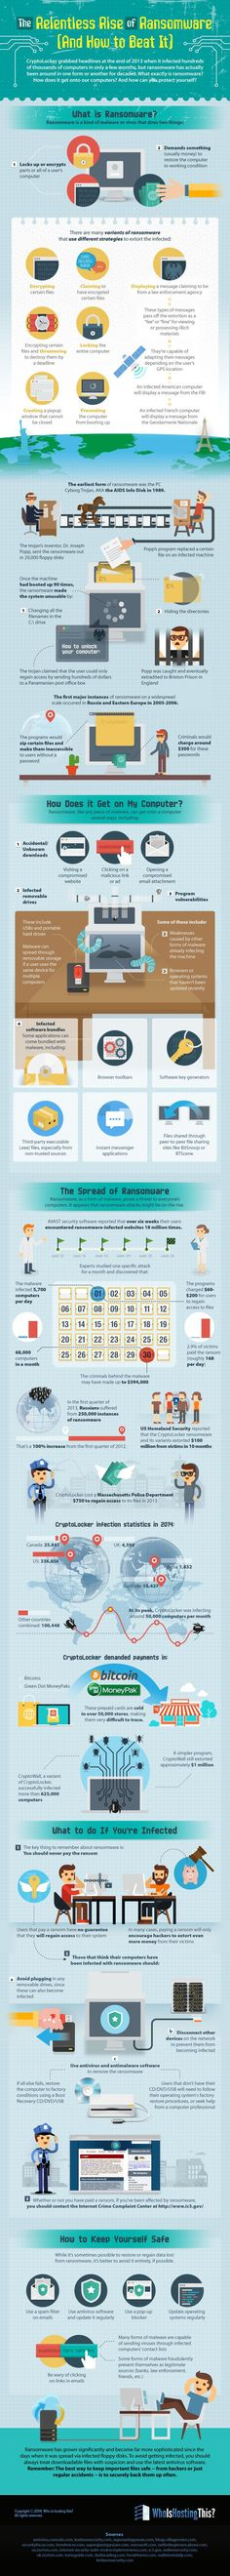 Ransomware Keeps Growing – How Can You Protect Yourself? #malwarevirus